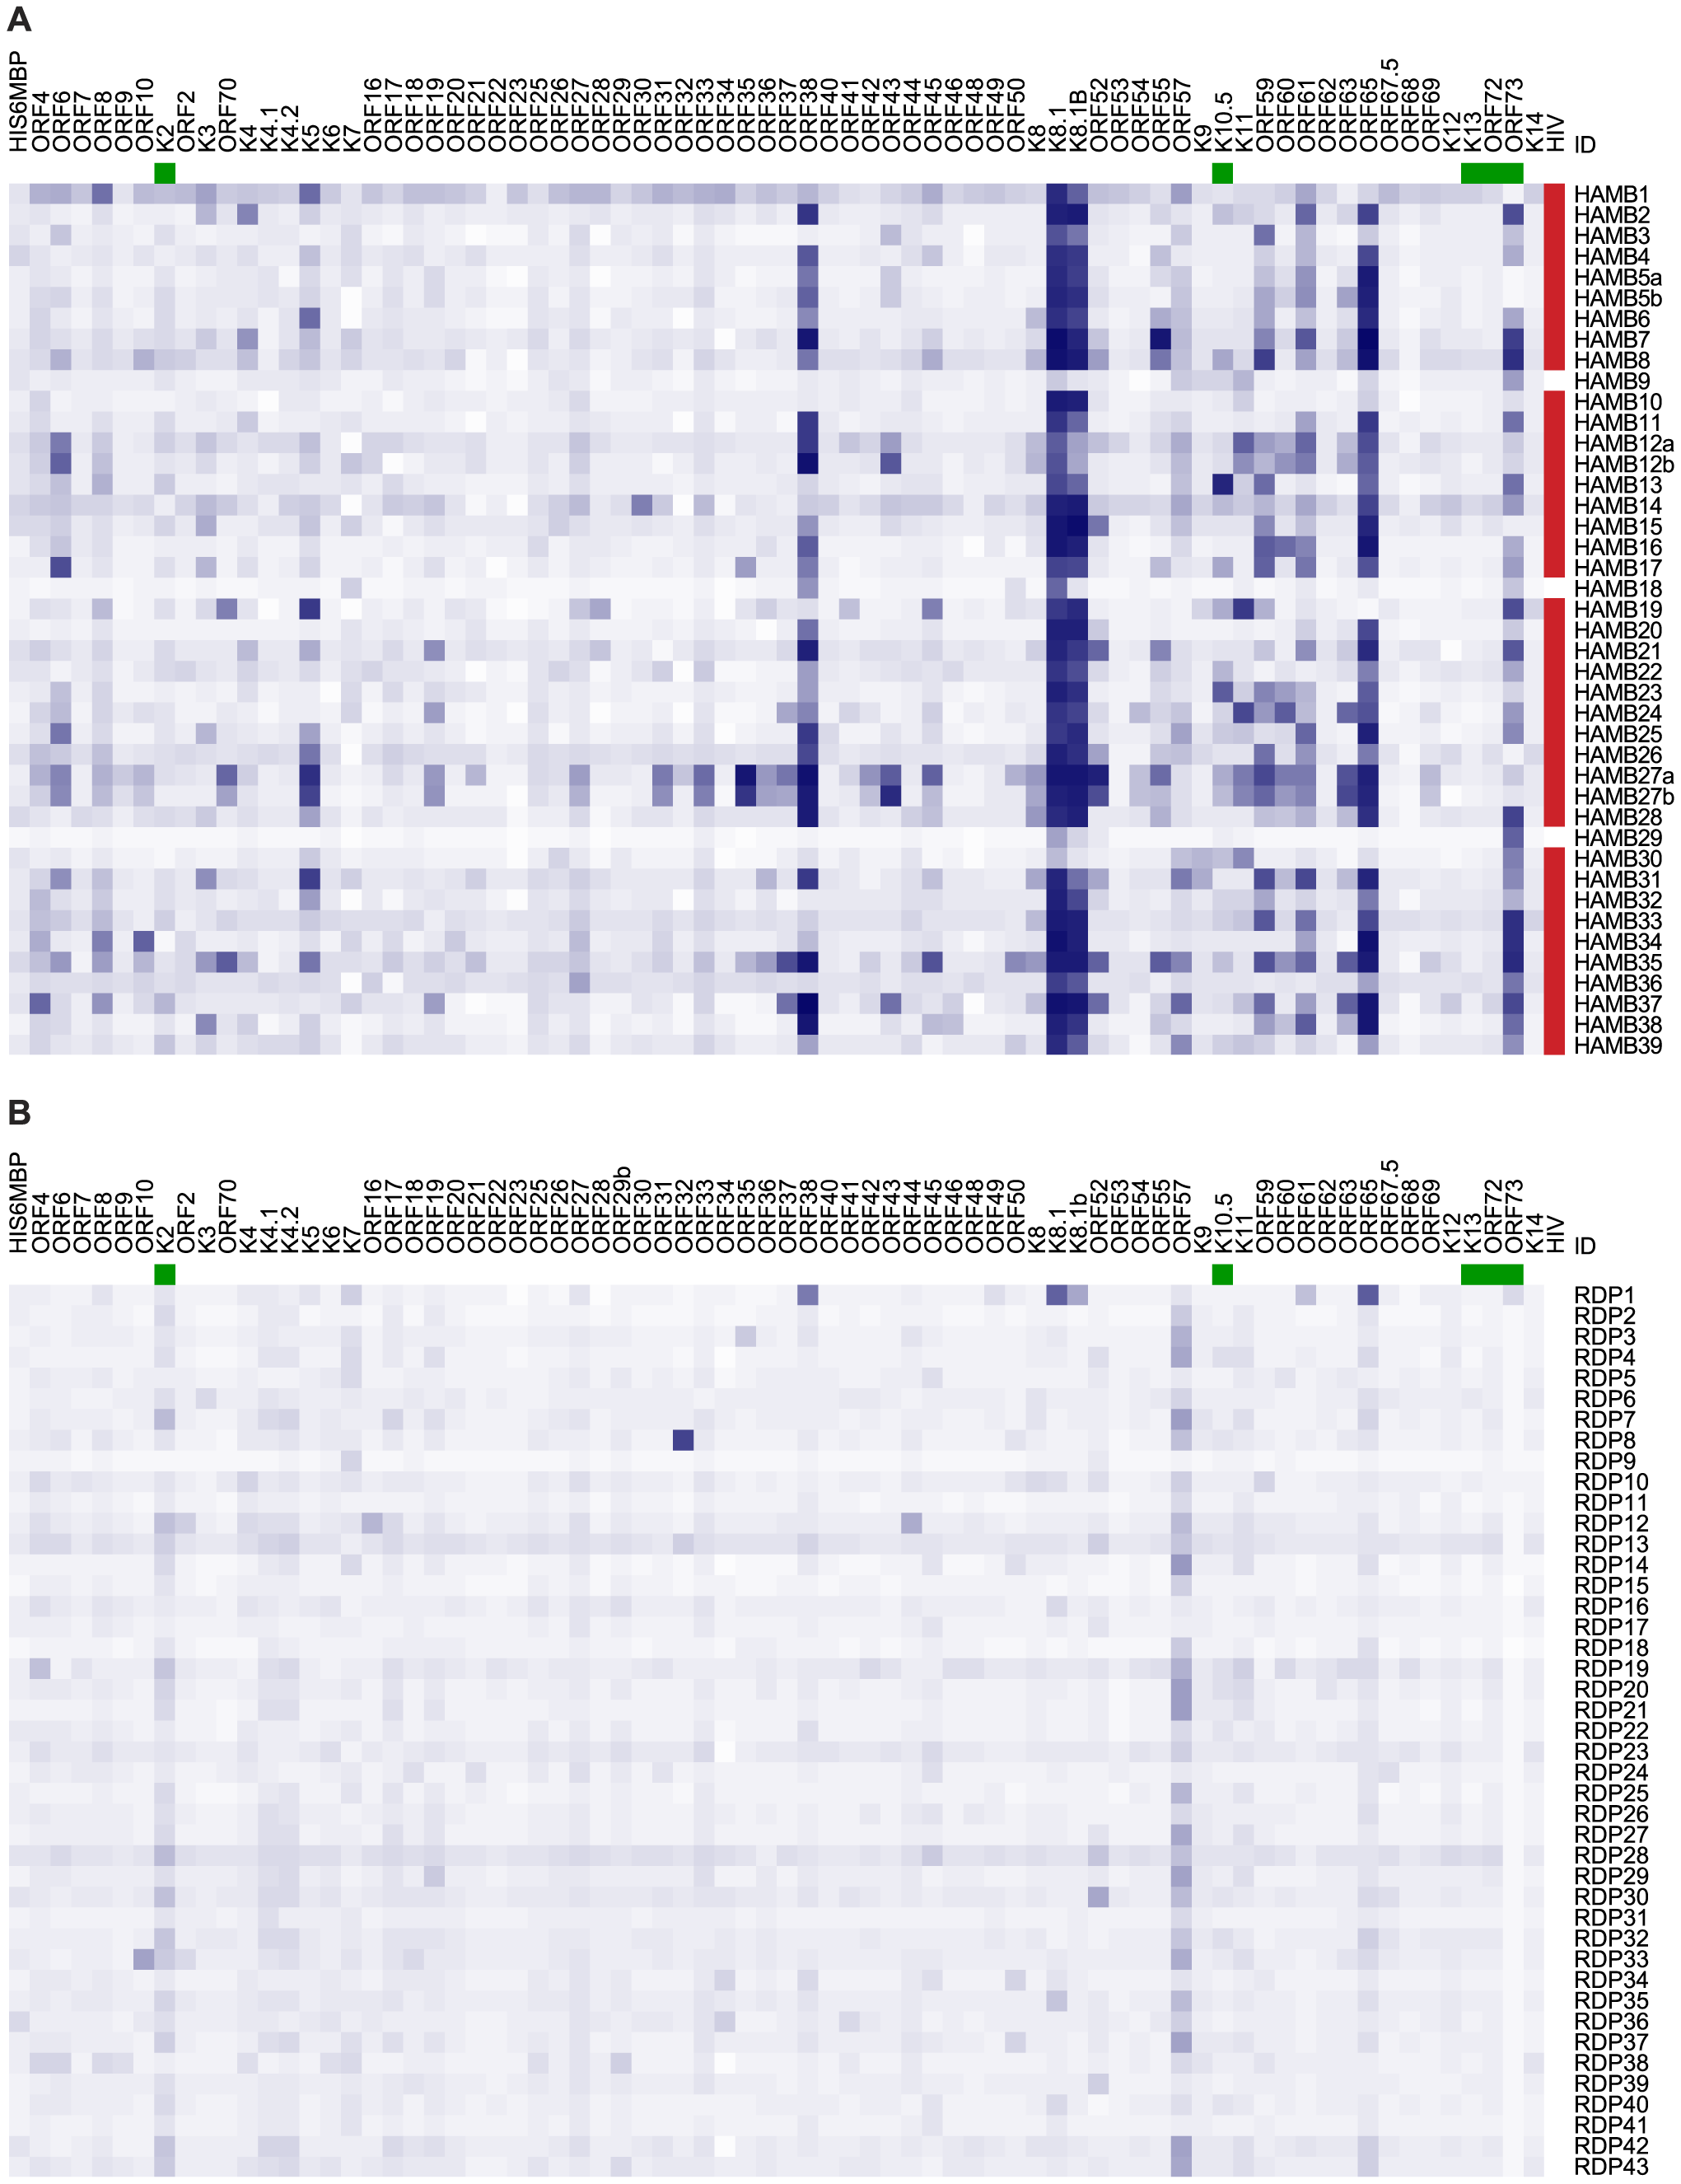 Heatmap showing seroreactivity of HAMB and RDP subjects to each antigen.